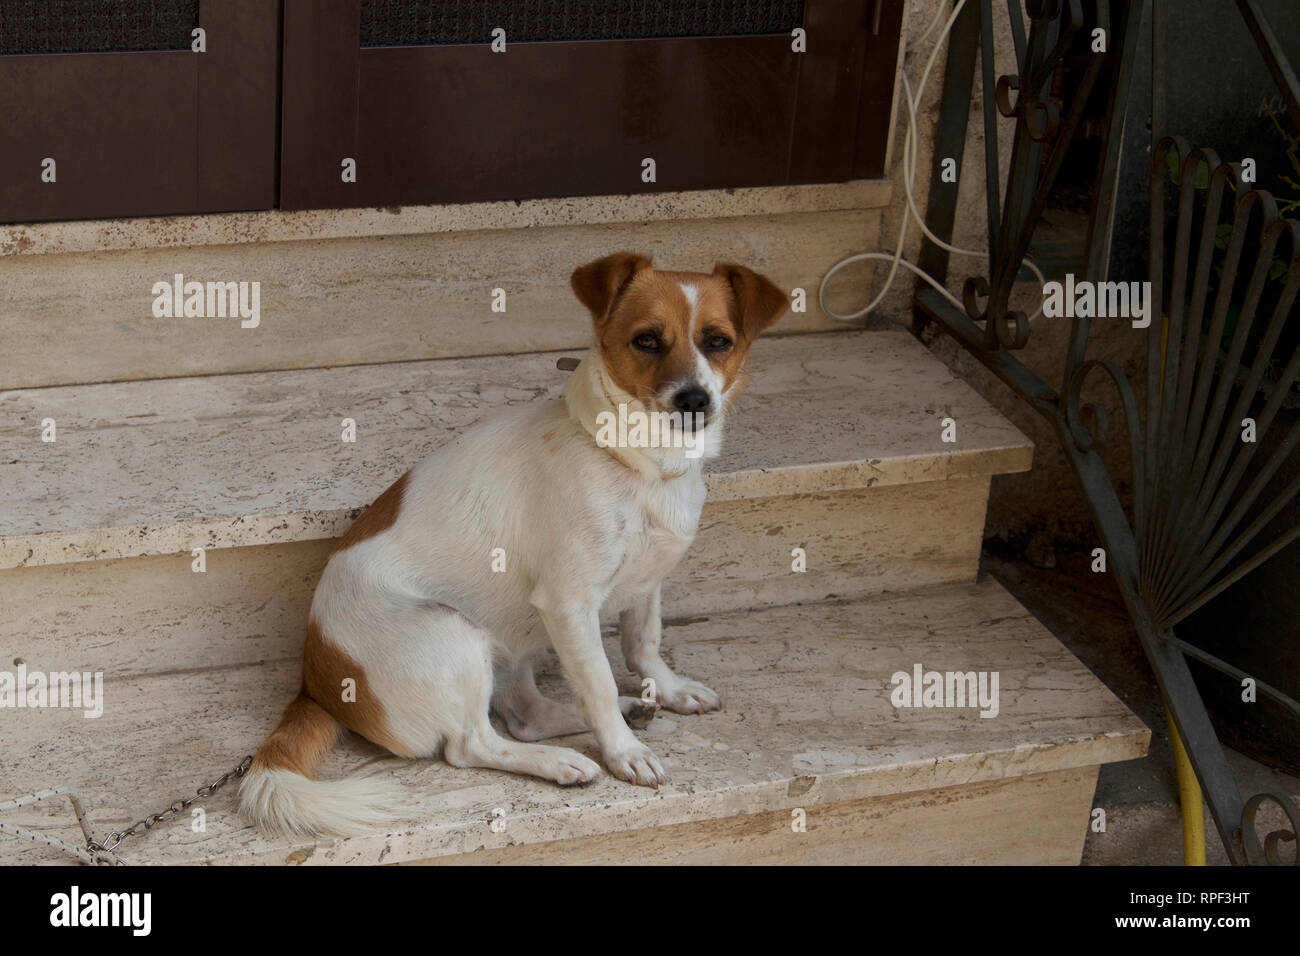 Alvito-Jack Russel Terrier dog sitting on the door step - Stock Image